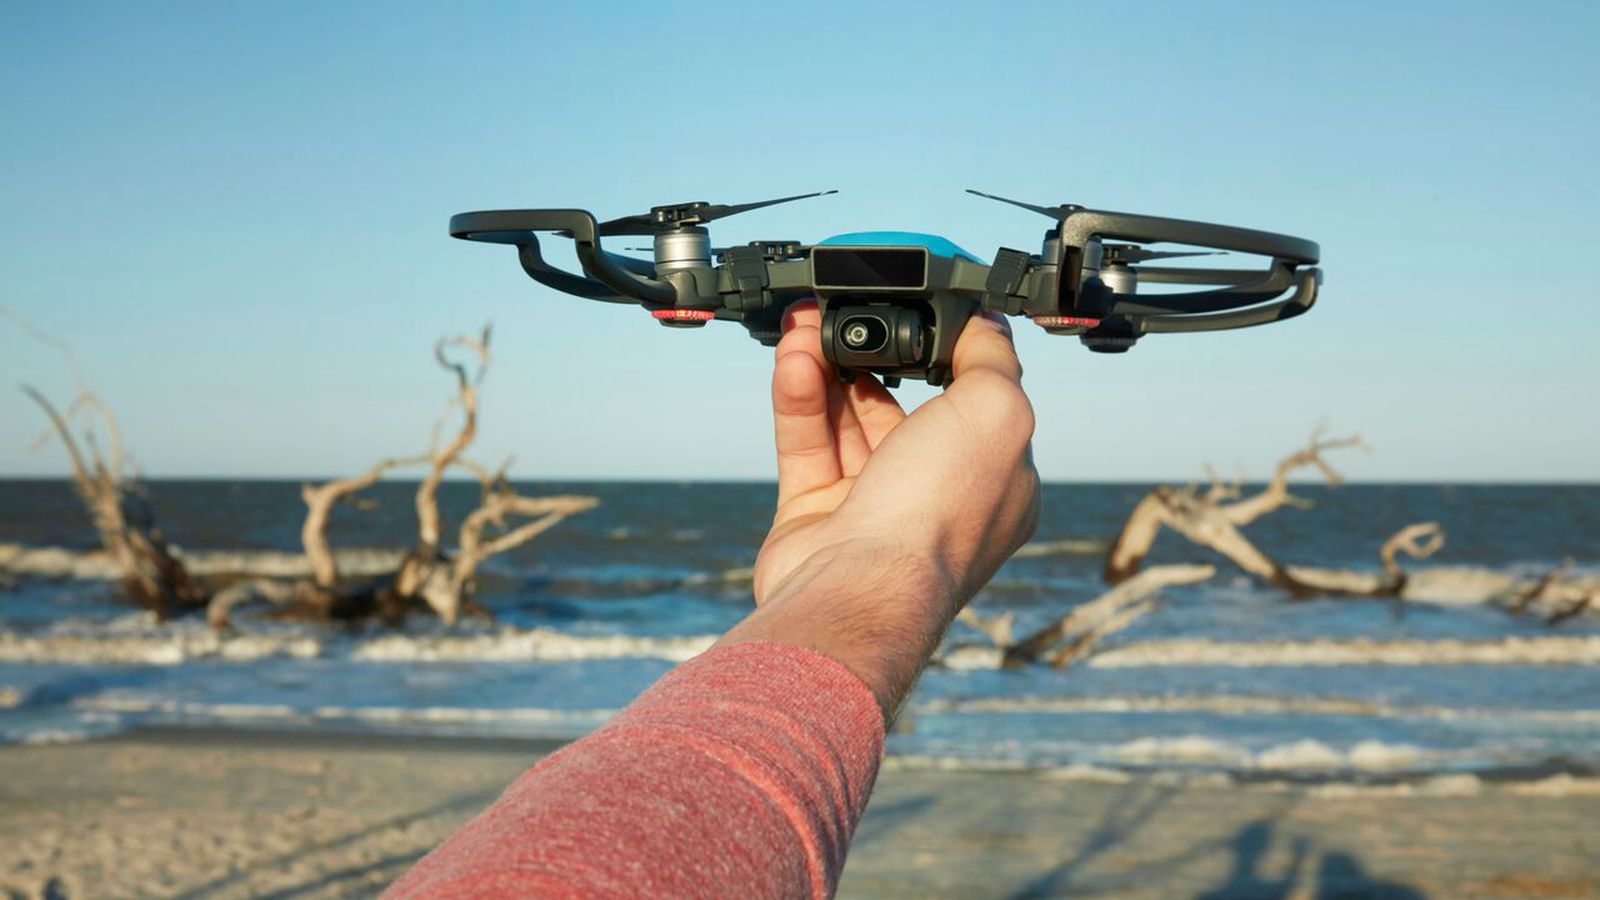 DJI's new selfie drone is controlled with just a wave of your hand